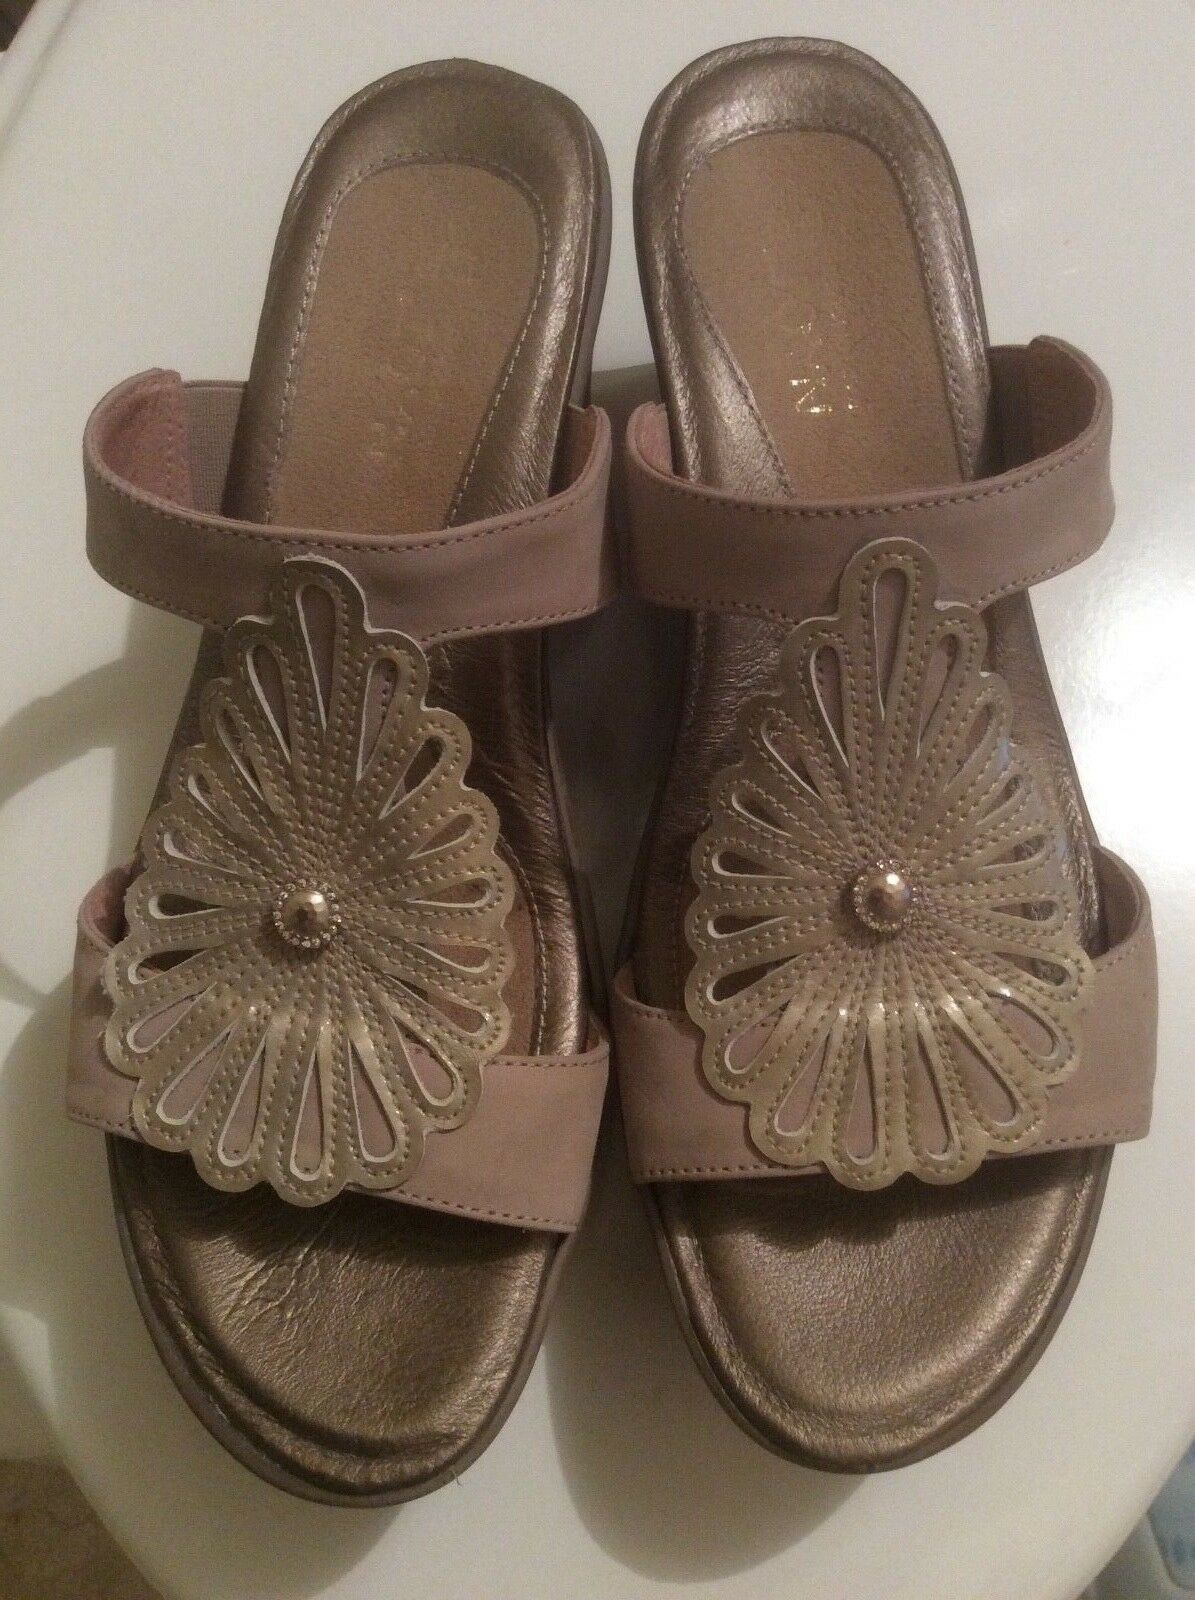 NEW NOAT Fancy Wedge Women's Size 38 accent Pearl as Slip on Sandal shoes NWOB